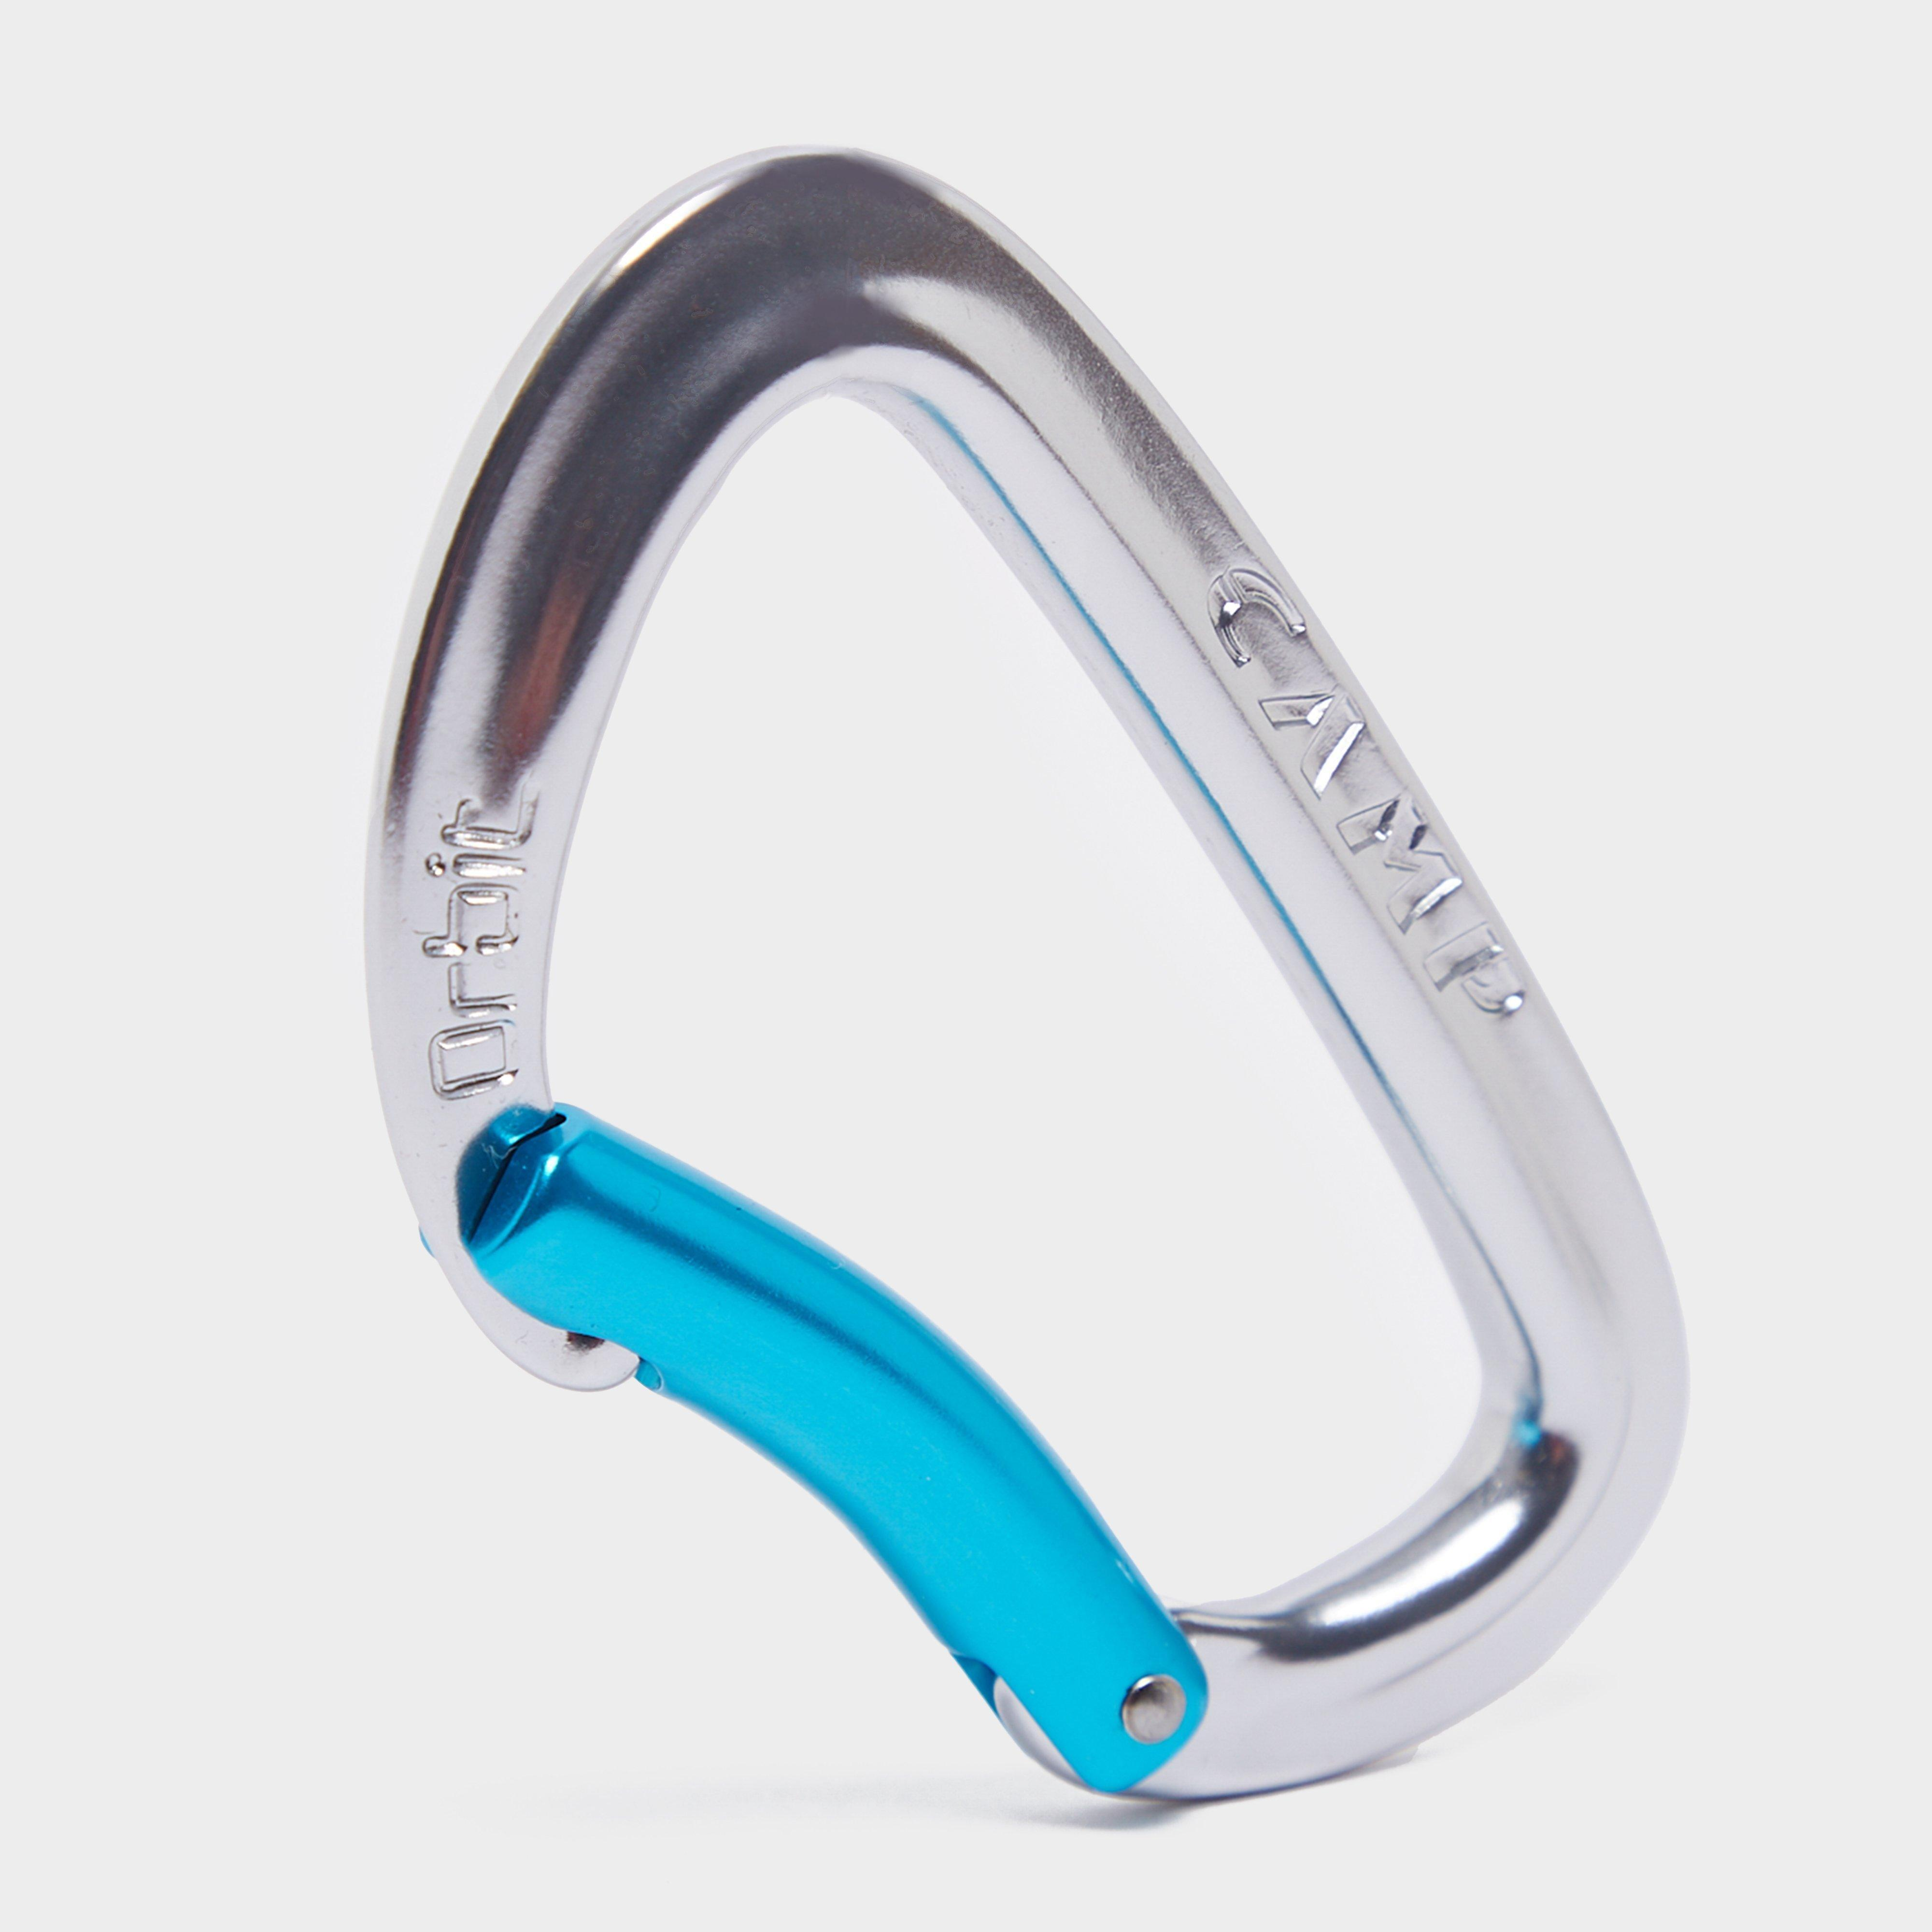 Camp Orbit Bent Gate Carabiner - Silver/gry  Silver/gry